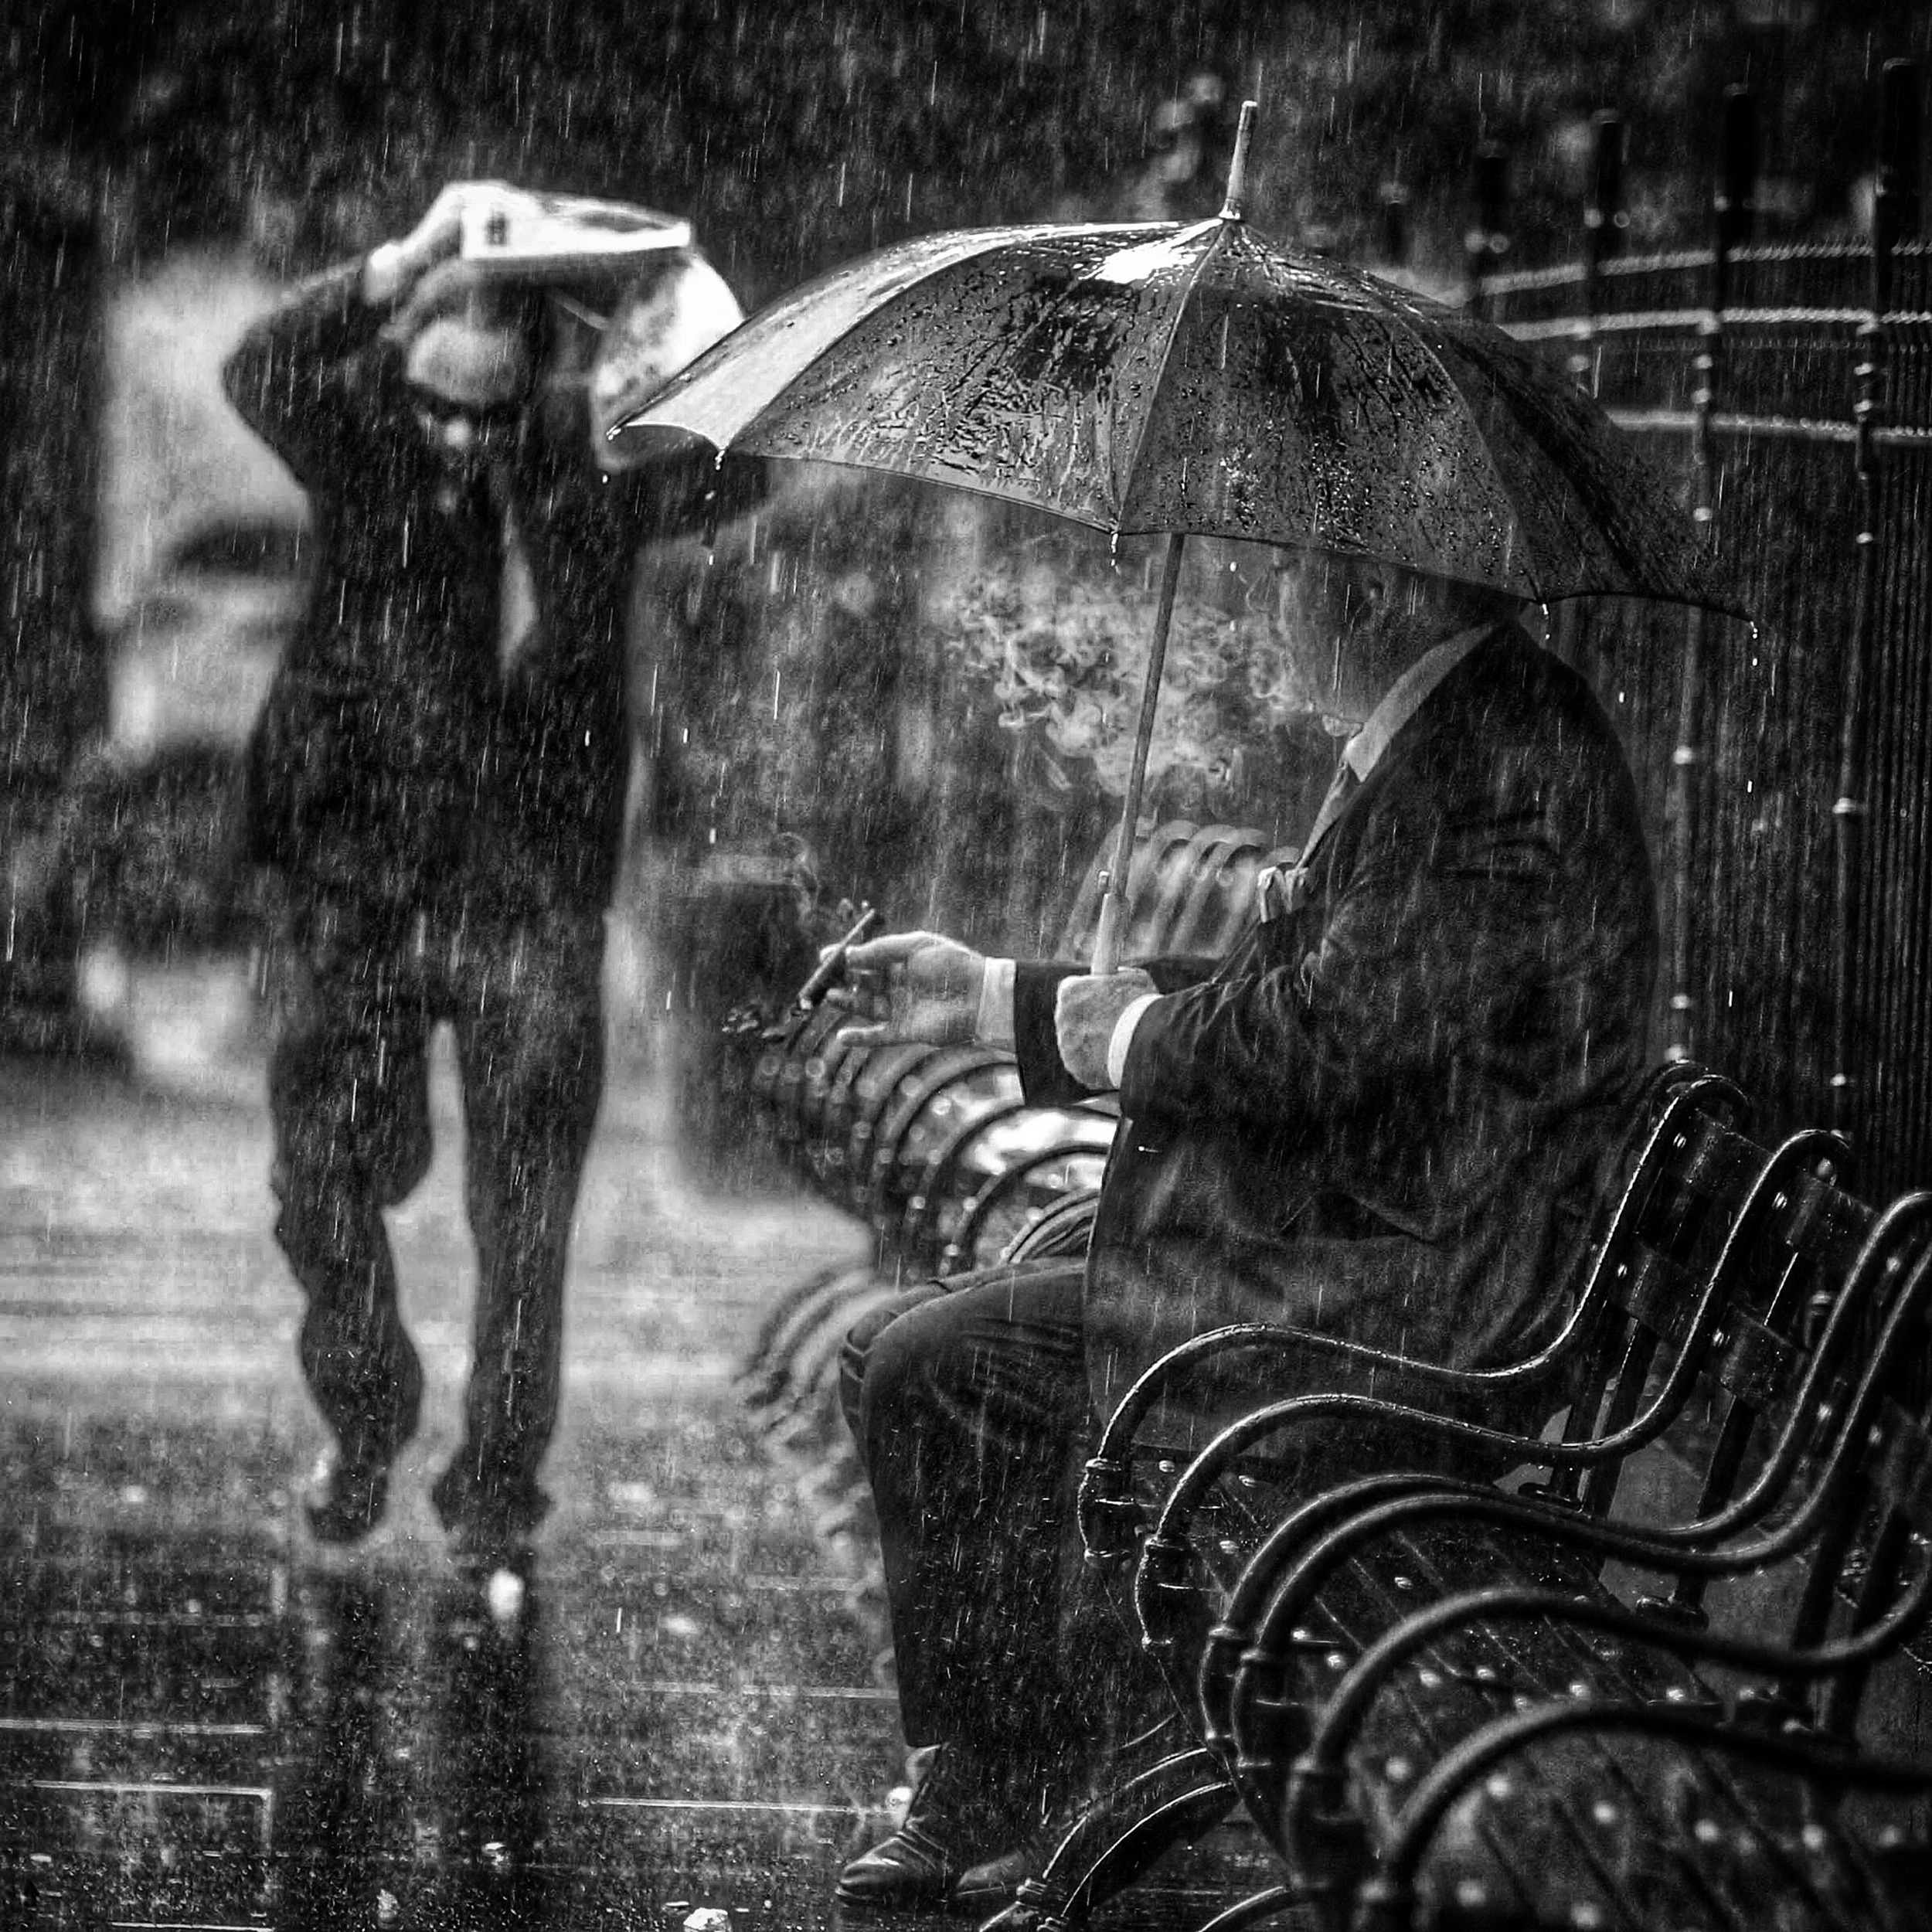 """A man who refused to be identified smokes a cigar under an umbrella on a bench as others are caught in an afternoon downpour Thursday, July 30, 2015, near City Hall in New York. After days of temperatures above 90 degrees the rain was expected to break the heat wave. The man said, """"It's always 85 and sunny with a cigar."""""""